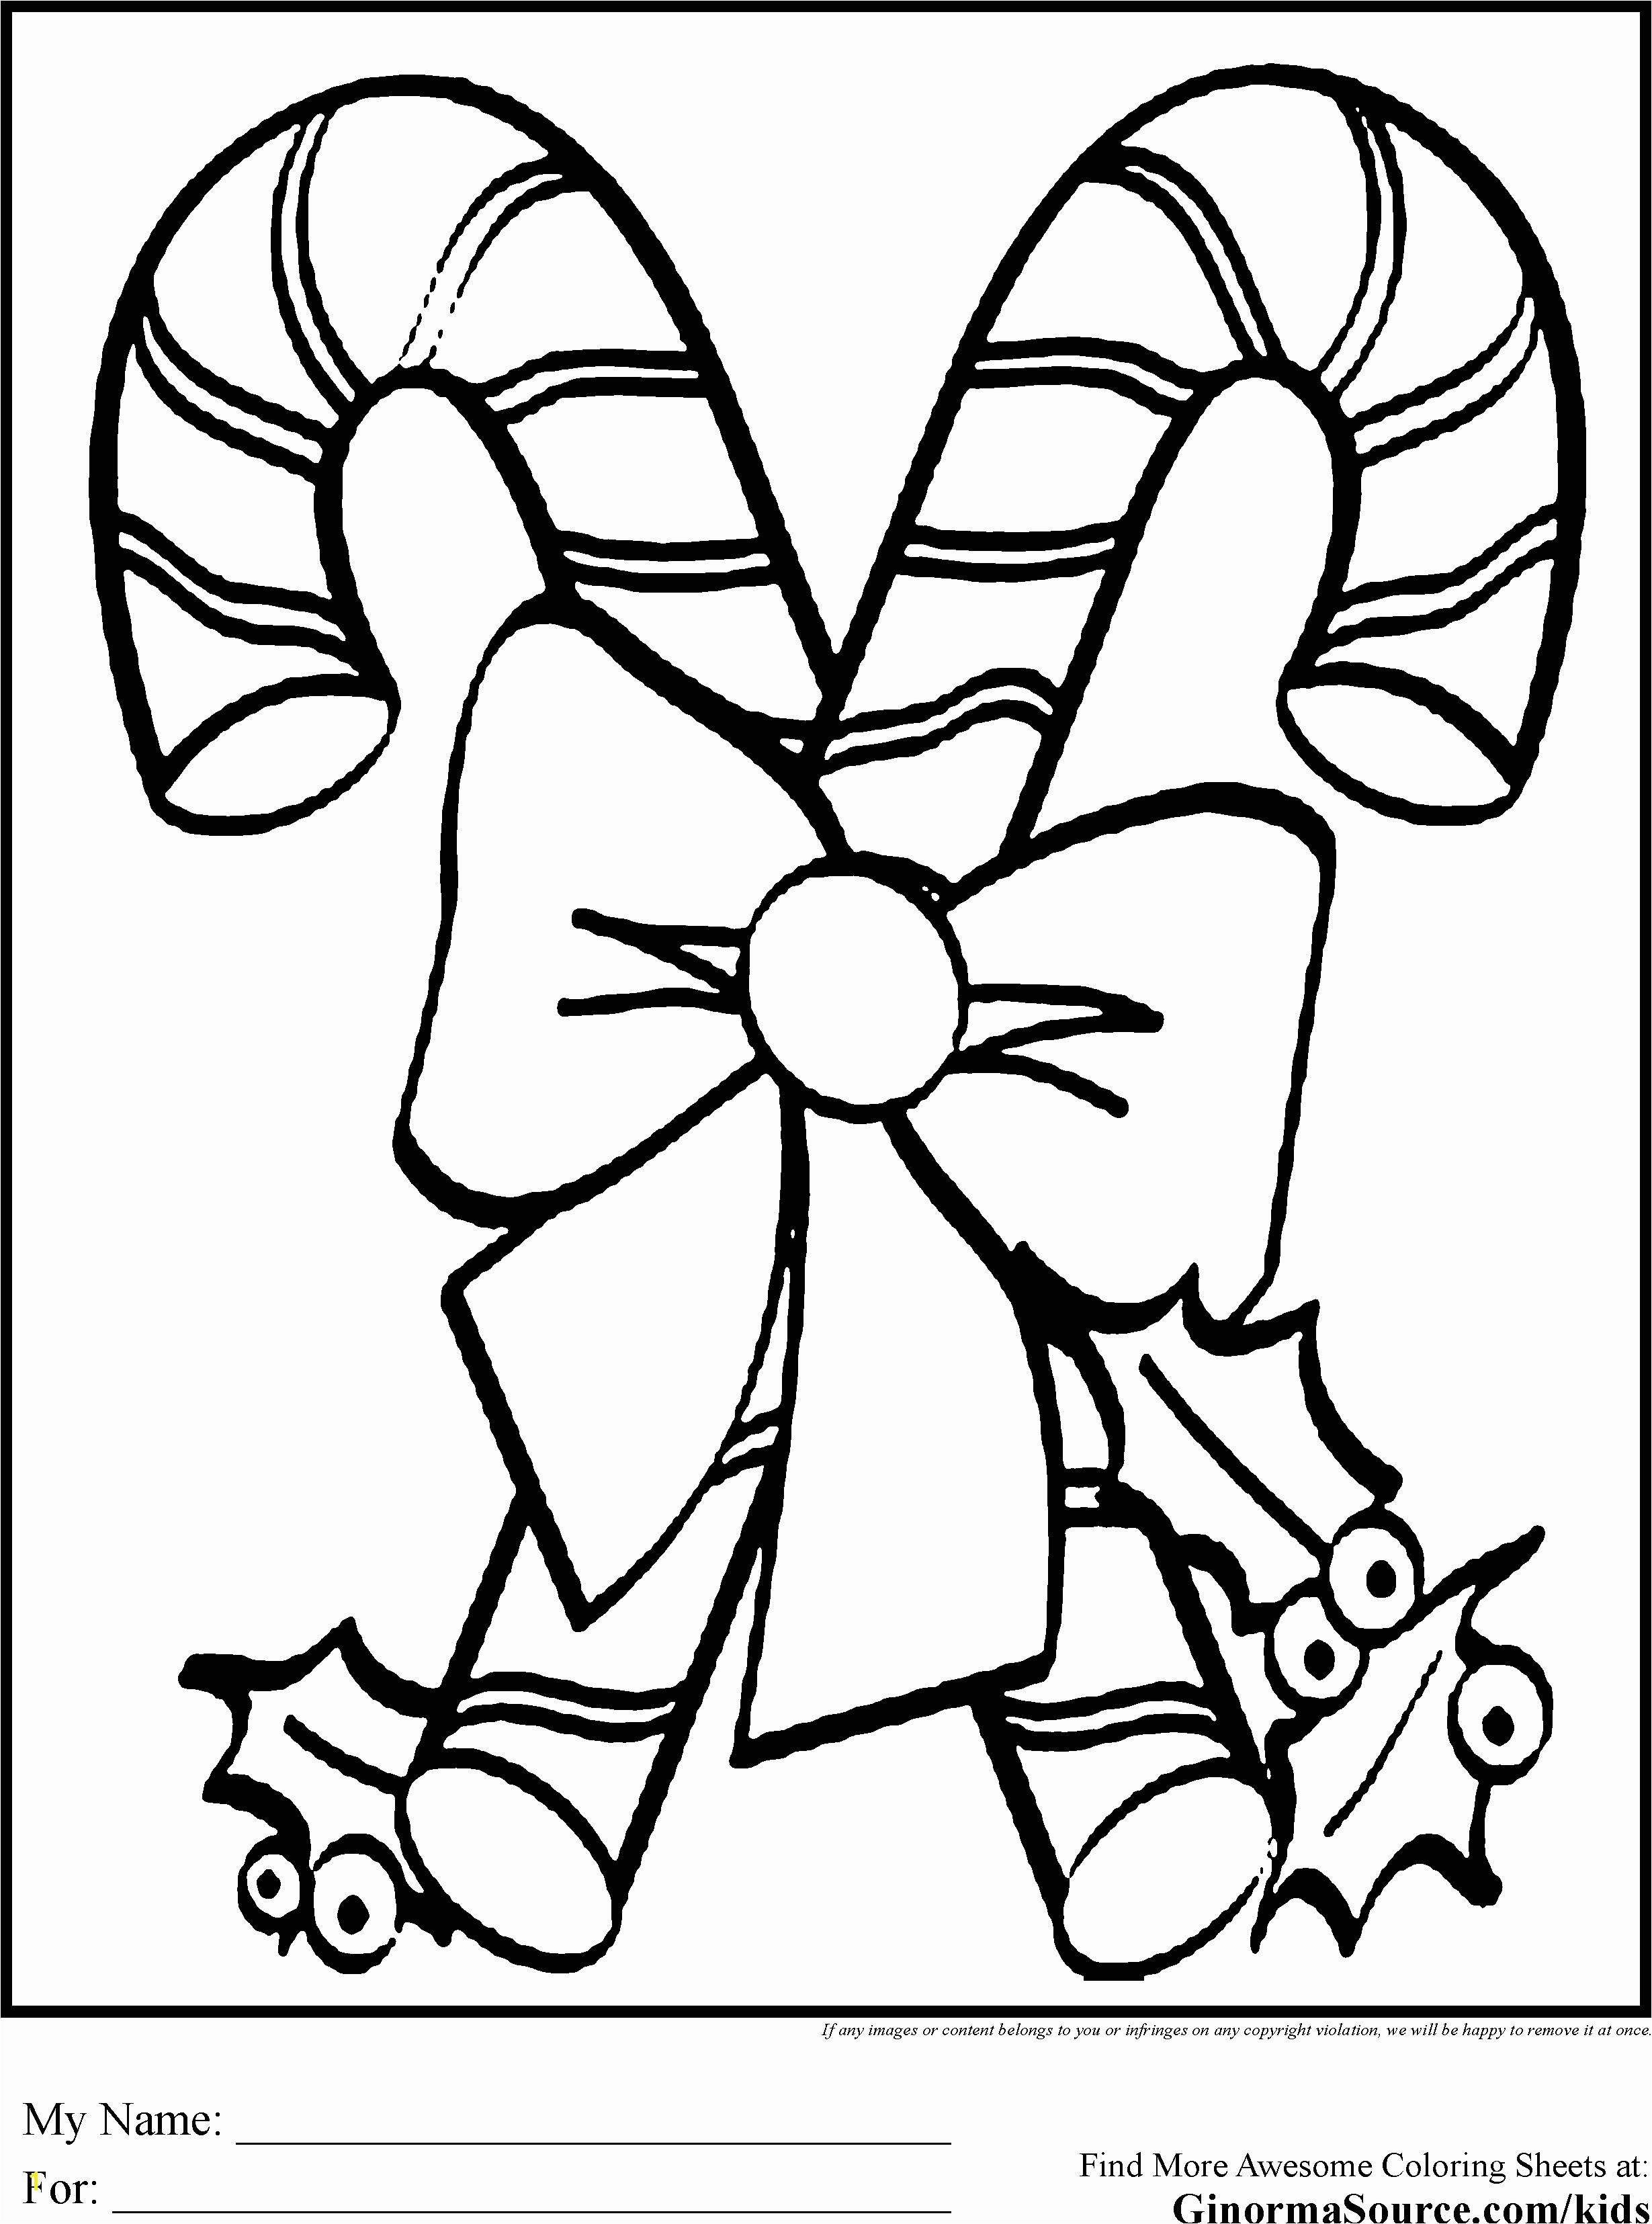 candy cane coloring sheet christmas coloring pages for kids candy canes